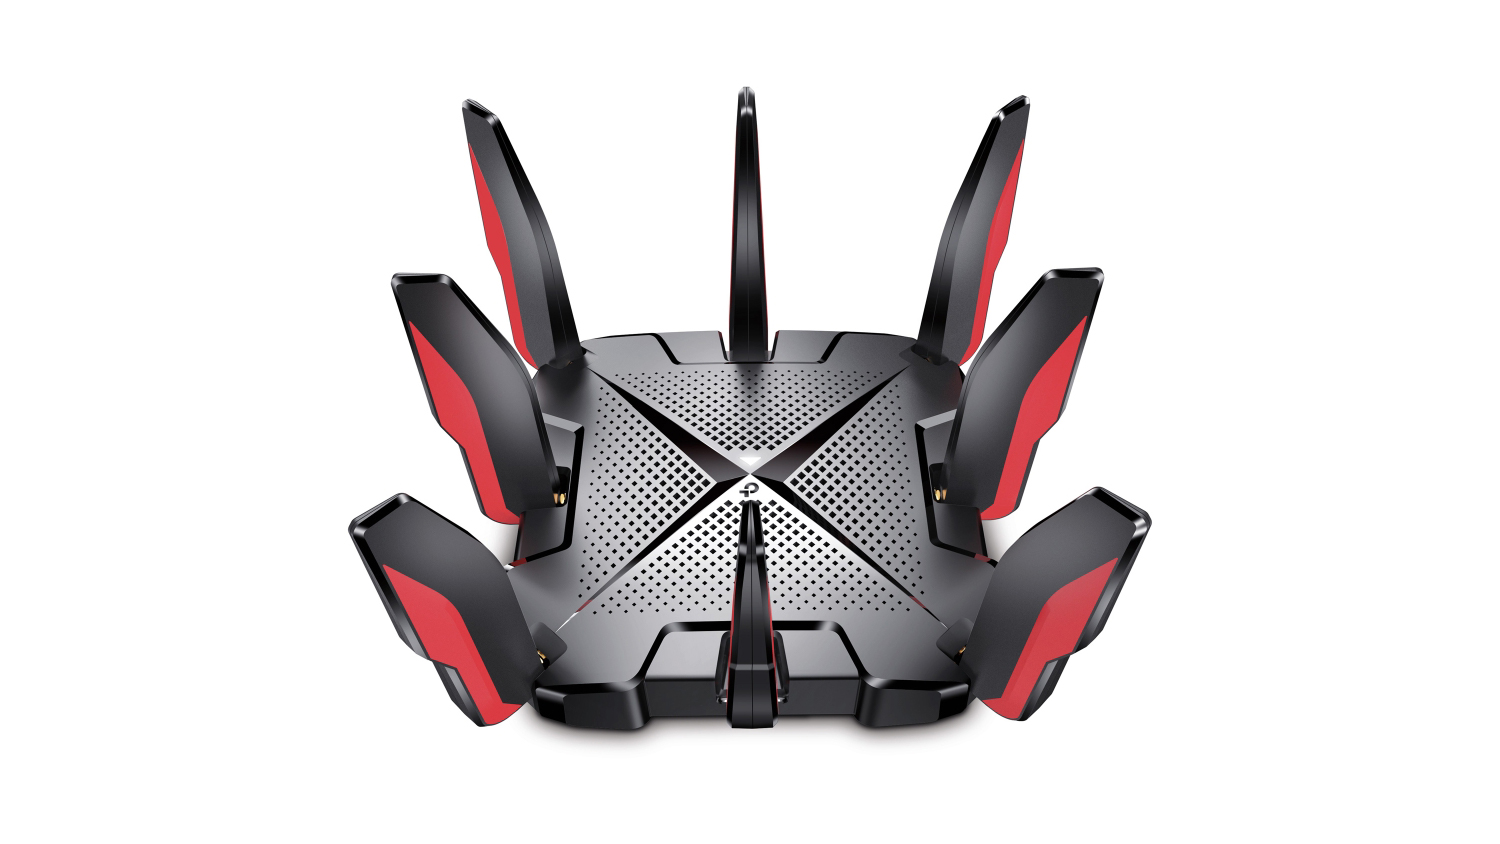 TP-Link Archer GX90 at an angle overhead on a white background